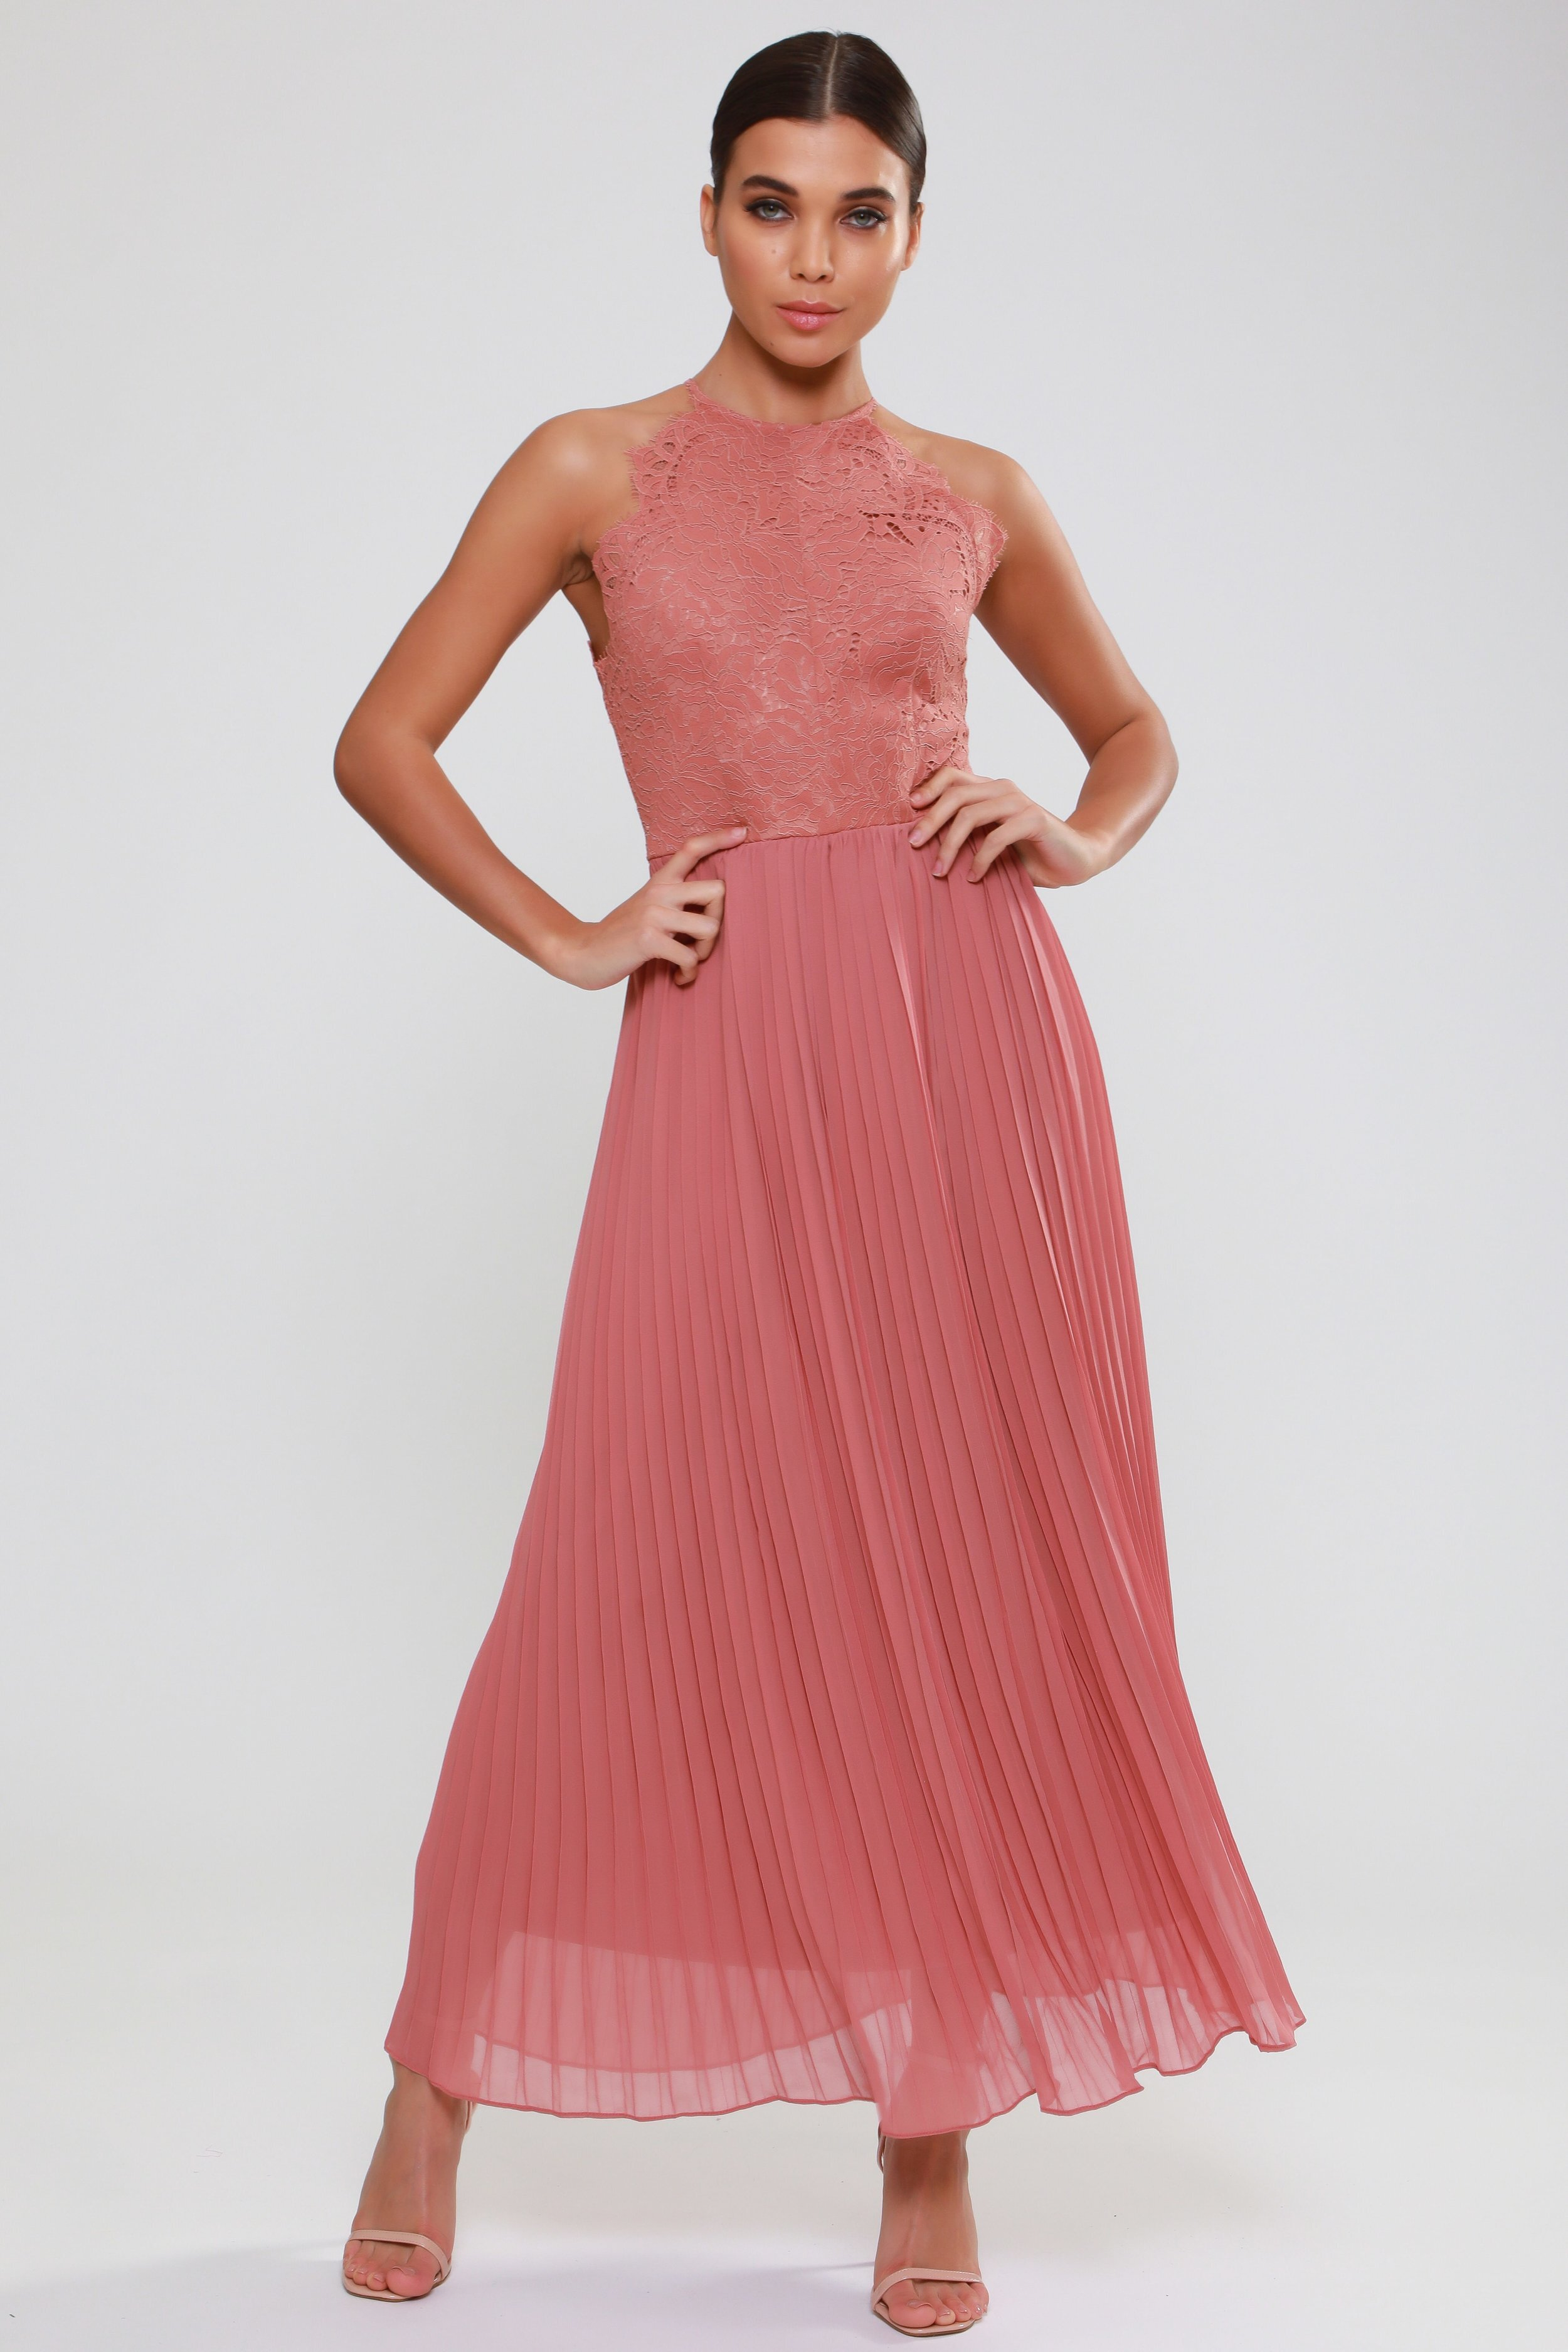 Lace Top Pleated  Maxi Dress   £95.00